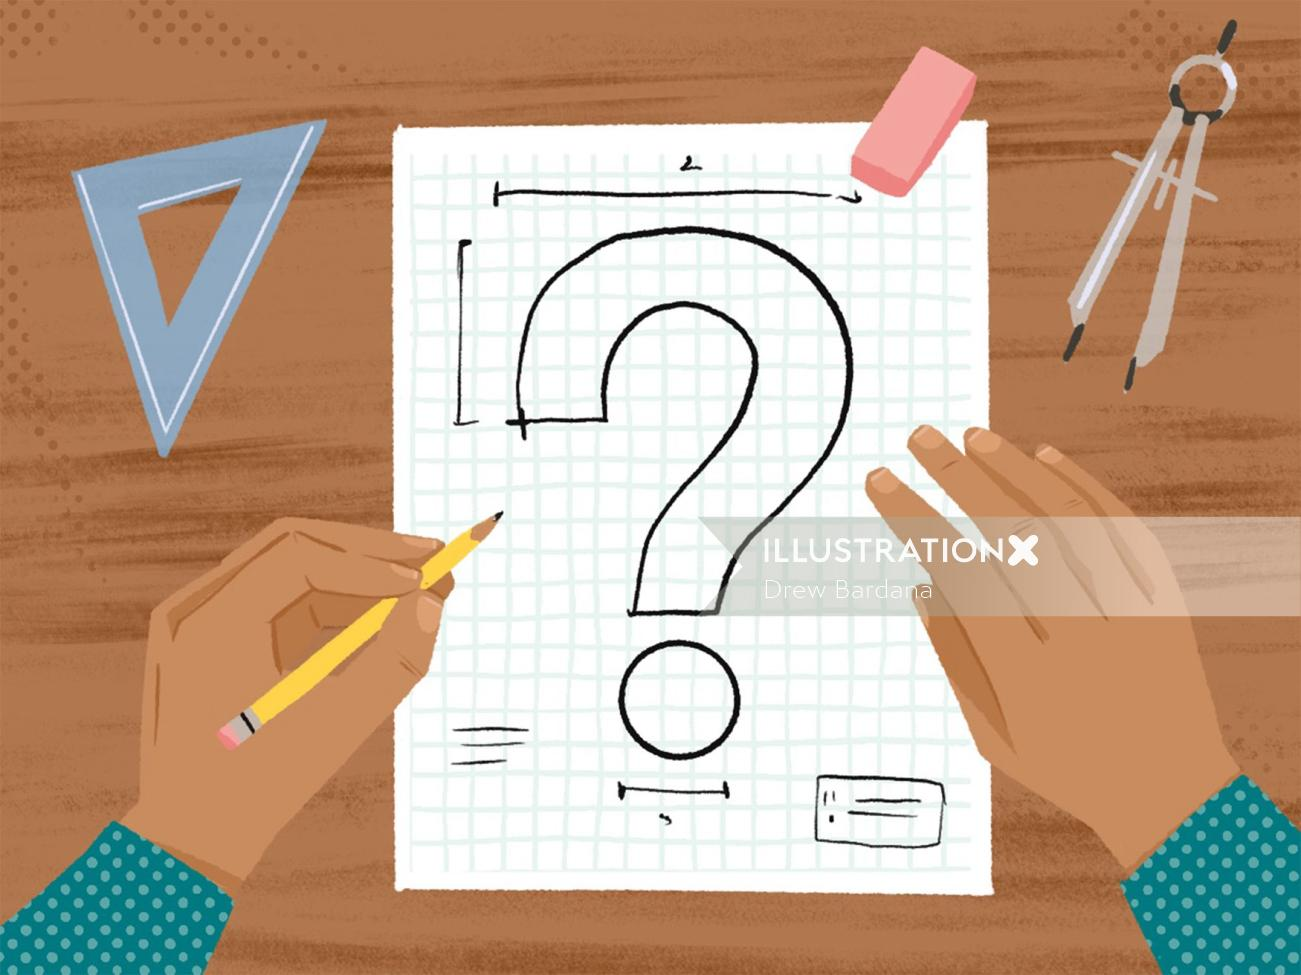 Designing the Right Question